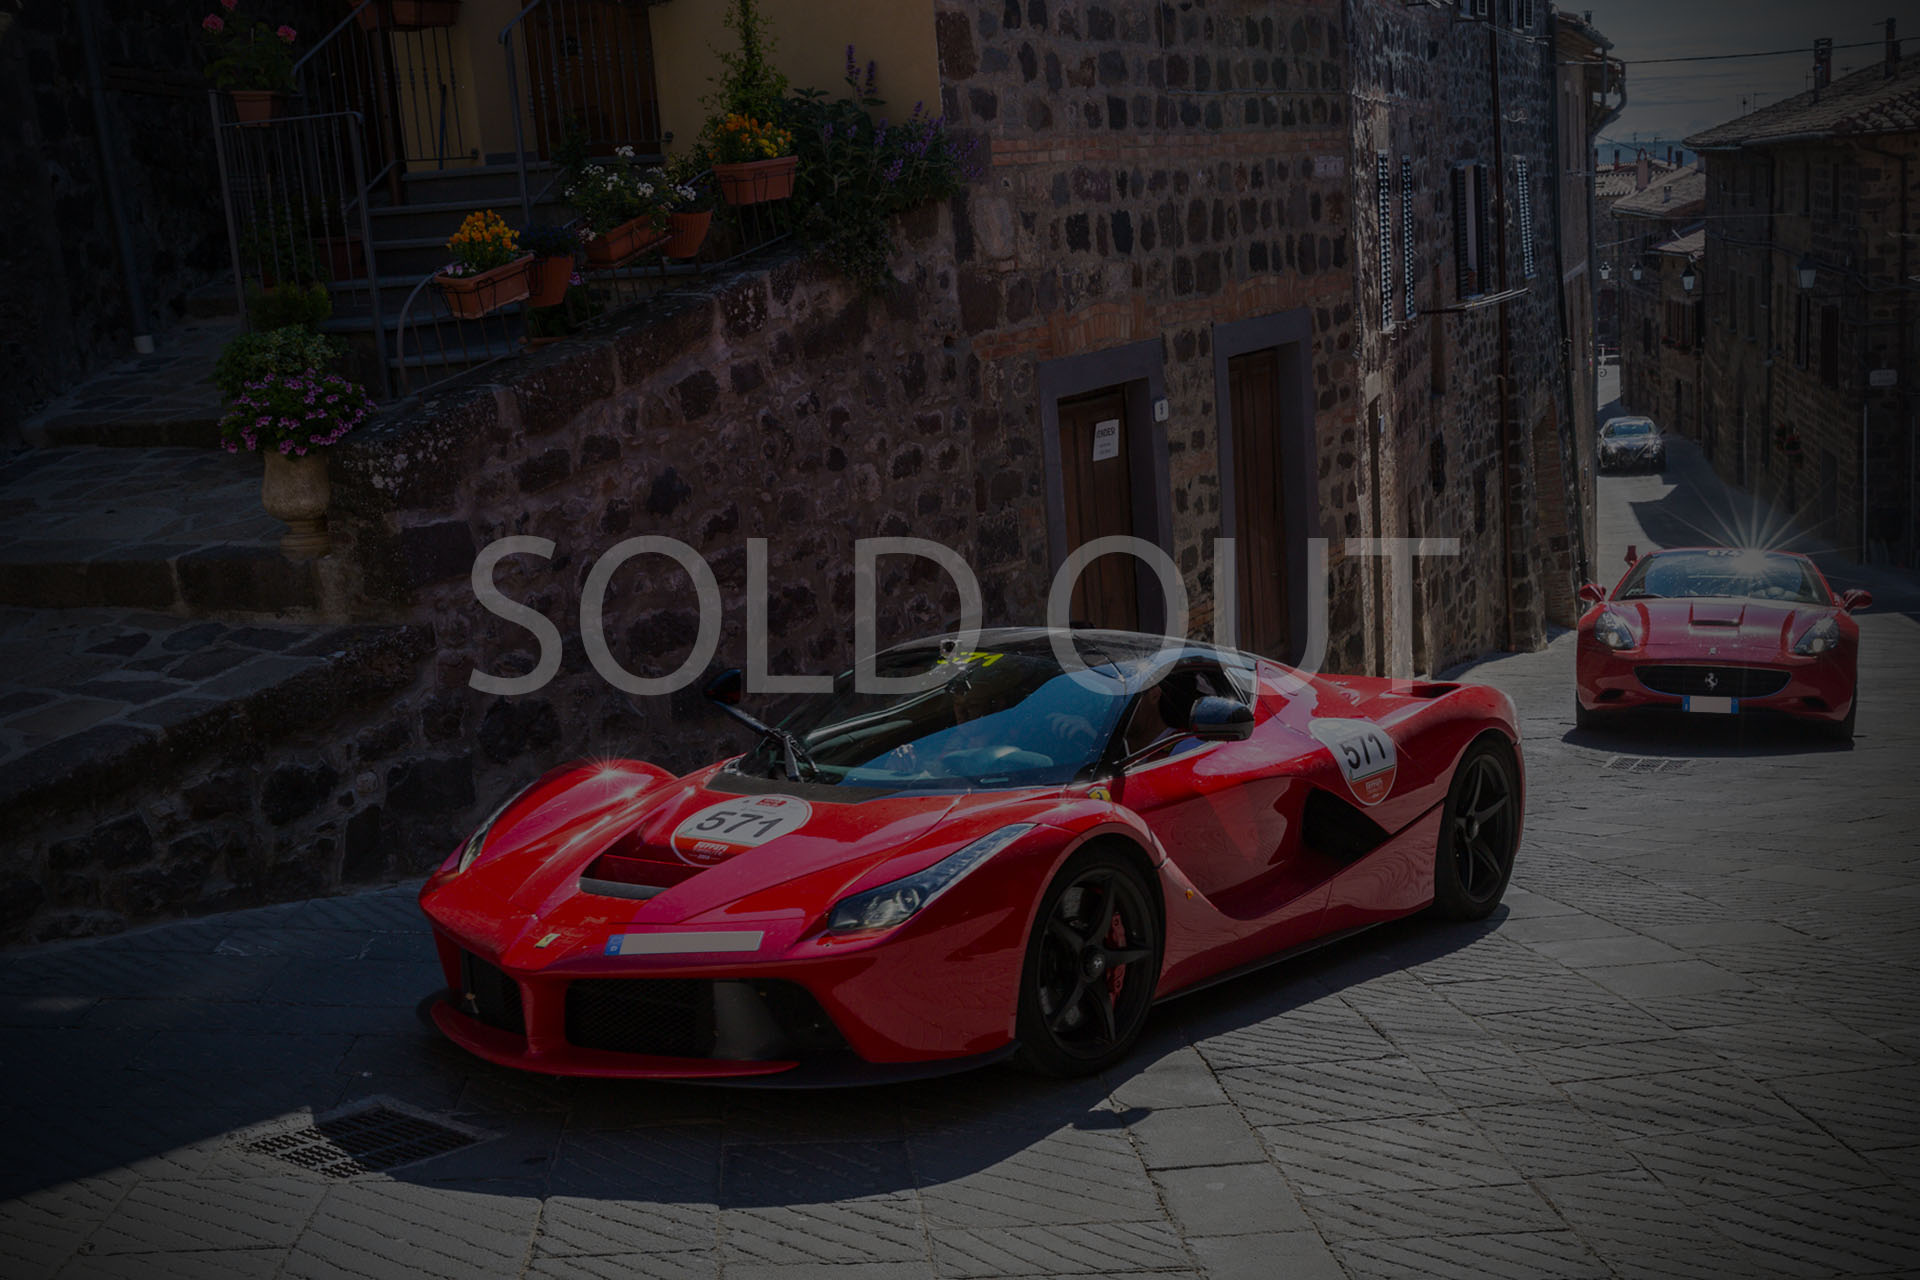 T9-I - Tuscany-Umbria Vino_SOLD OUT Ruote Leggendarie